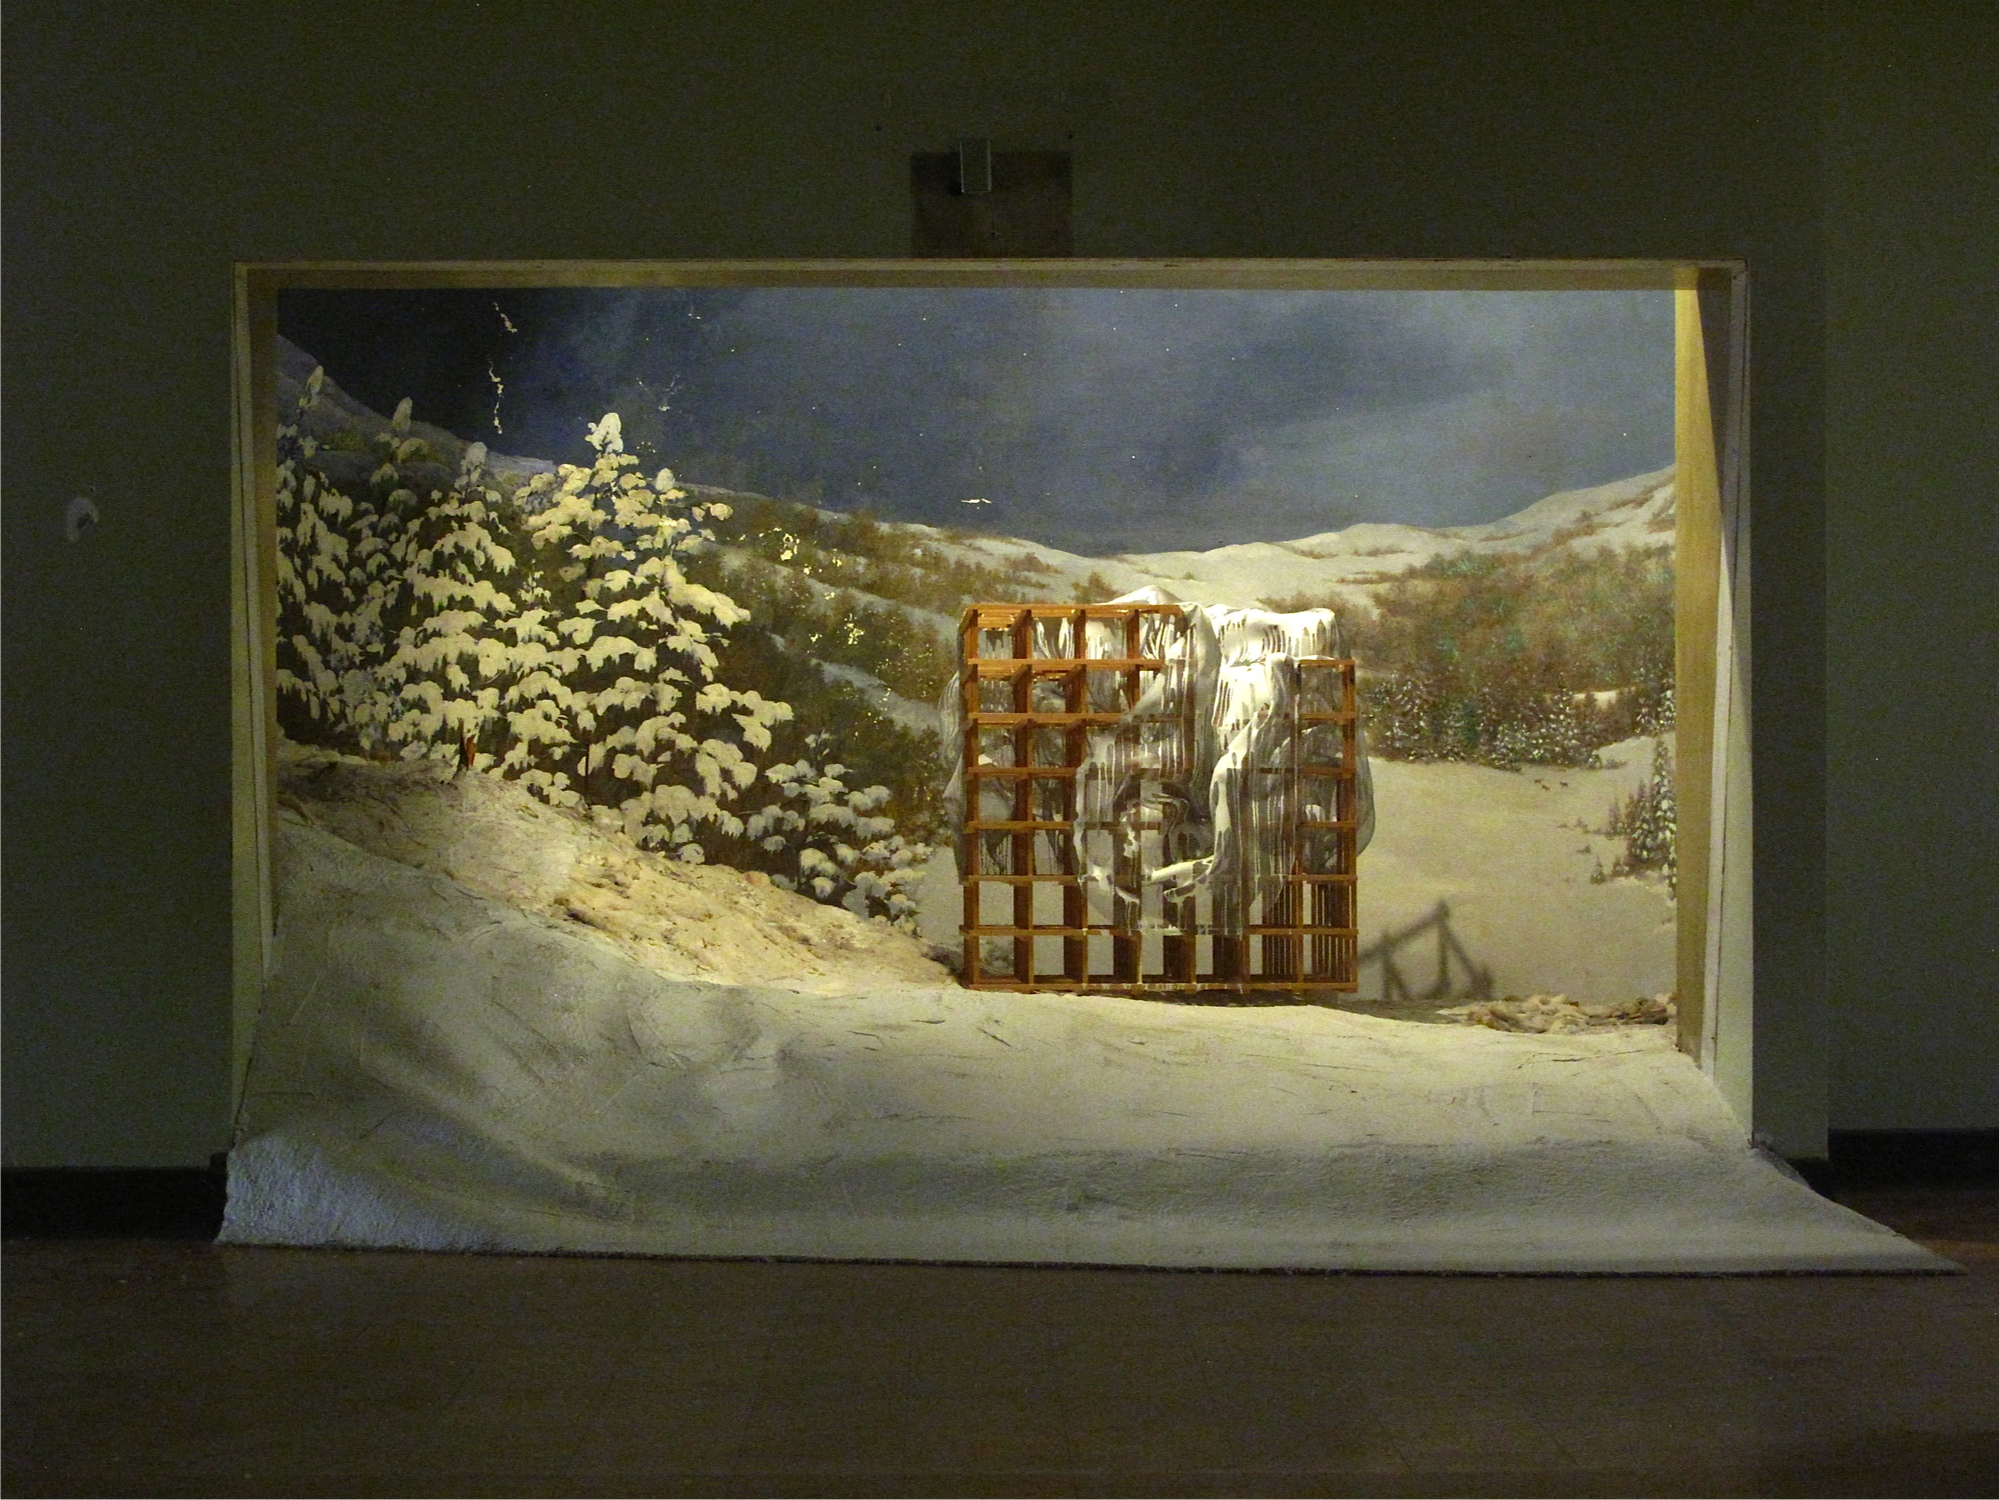 Diorama Process By Alois Kronschlaeger